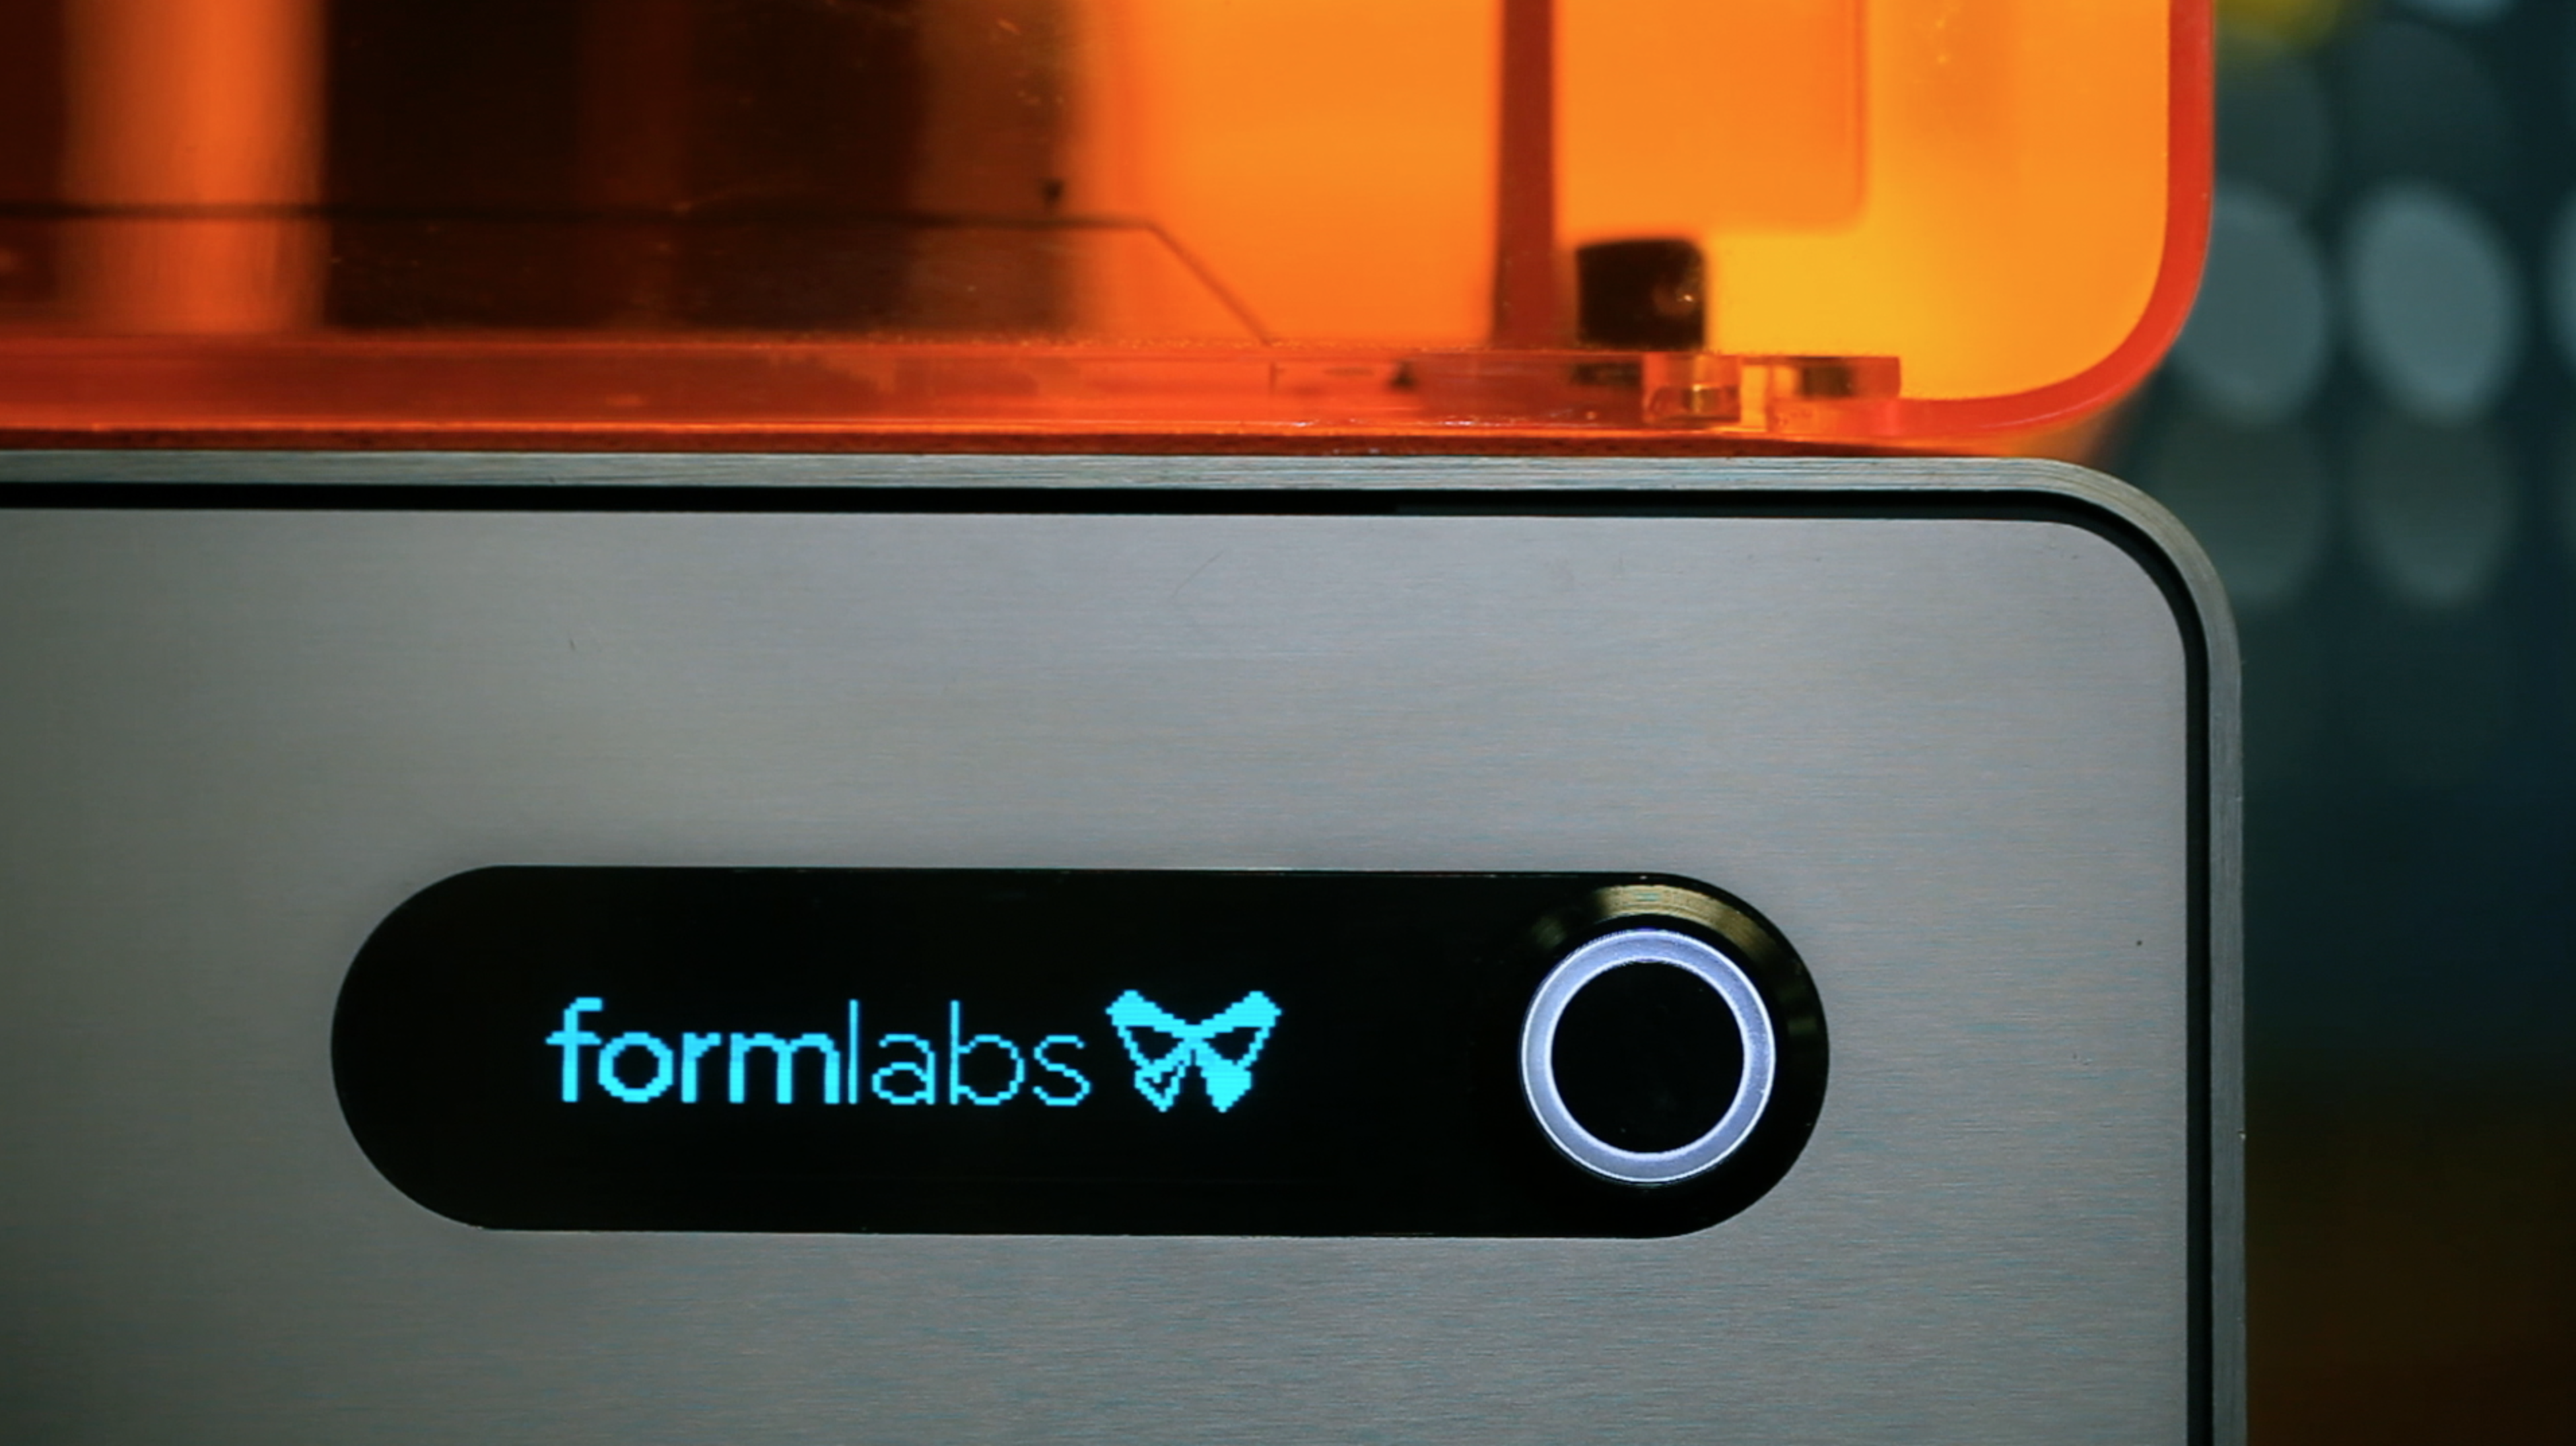 Formlabs Logo on 3D Printer